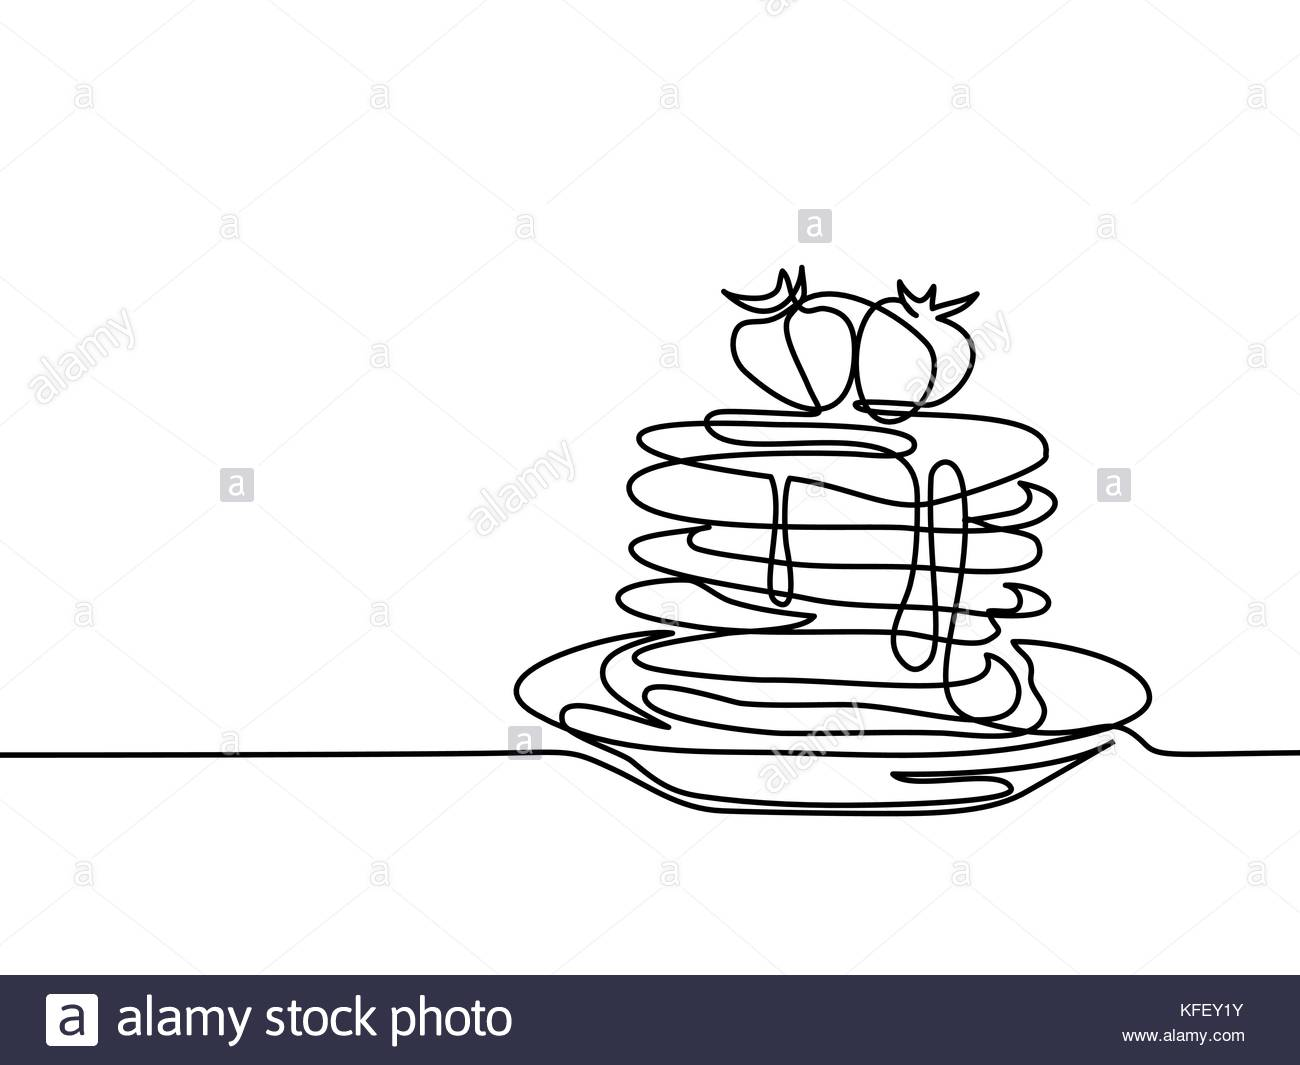 1300x1065 Continuous Line Drawing. Pancakes With Strawberry Jam On Plate